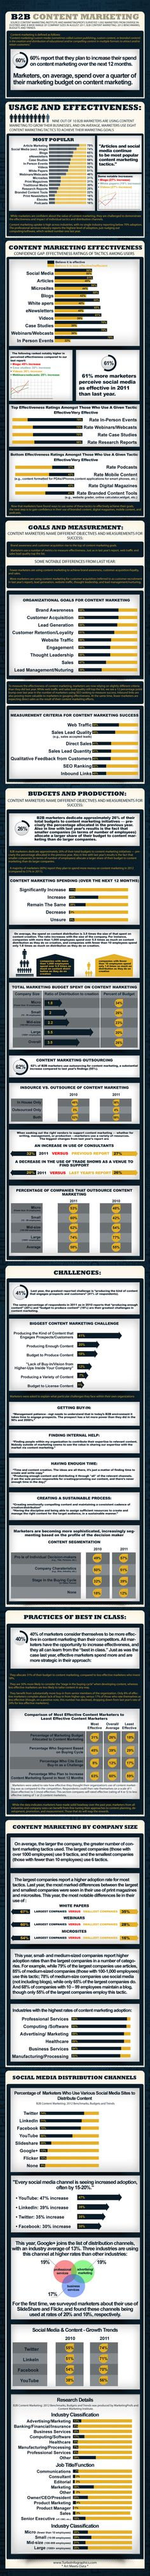 B2B content marketing = 25% of marketing budgets via @turboinfographics #B2B #contentmarketing